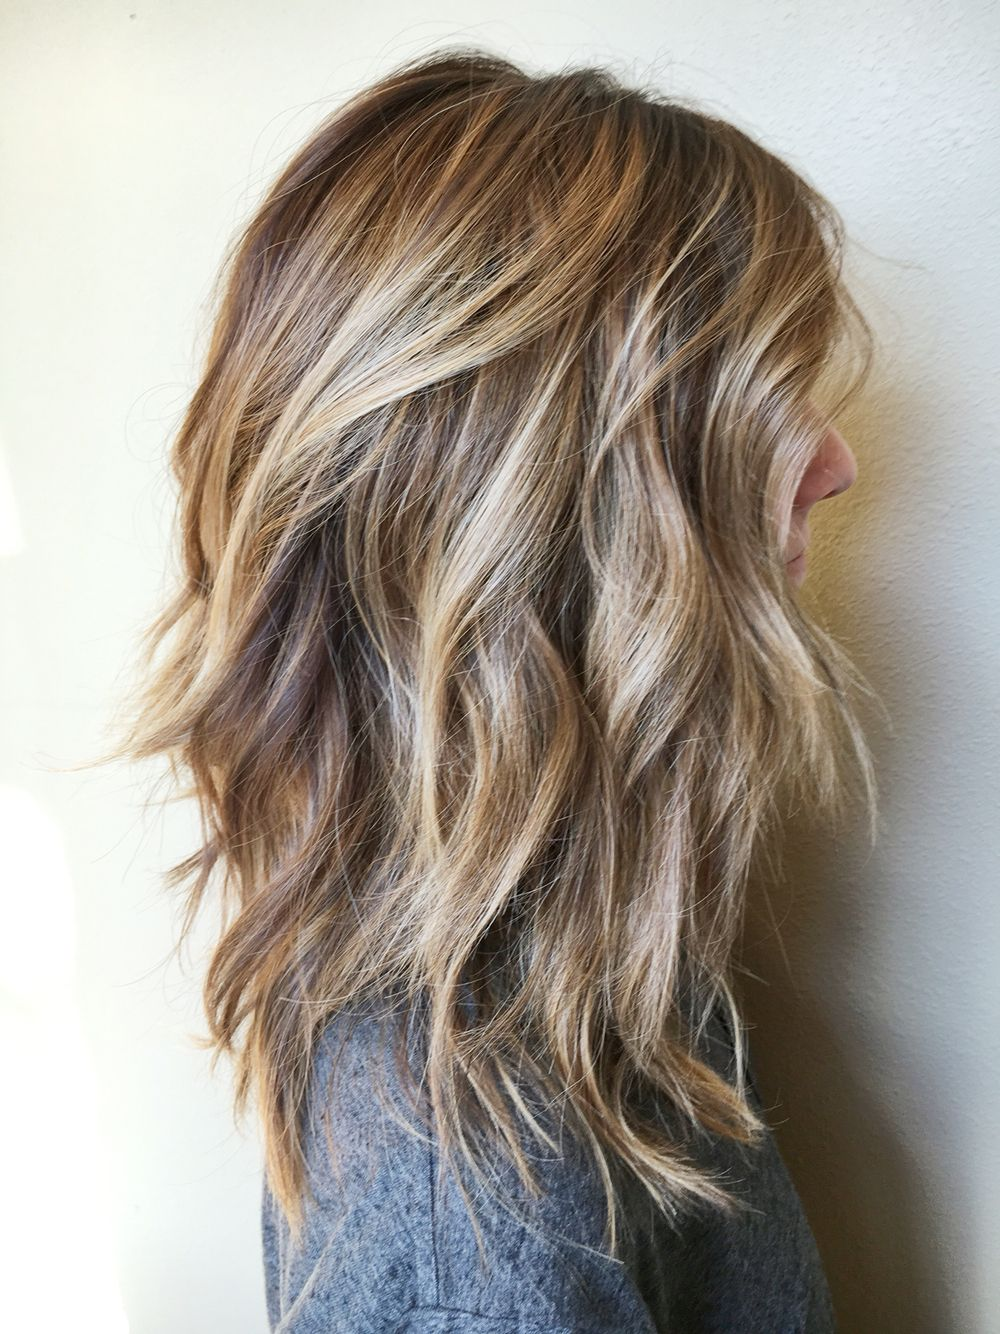 Pin by stephanie bayag on hair pinterest balayage messy curls